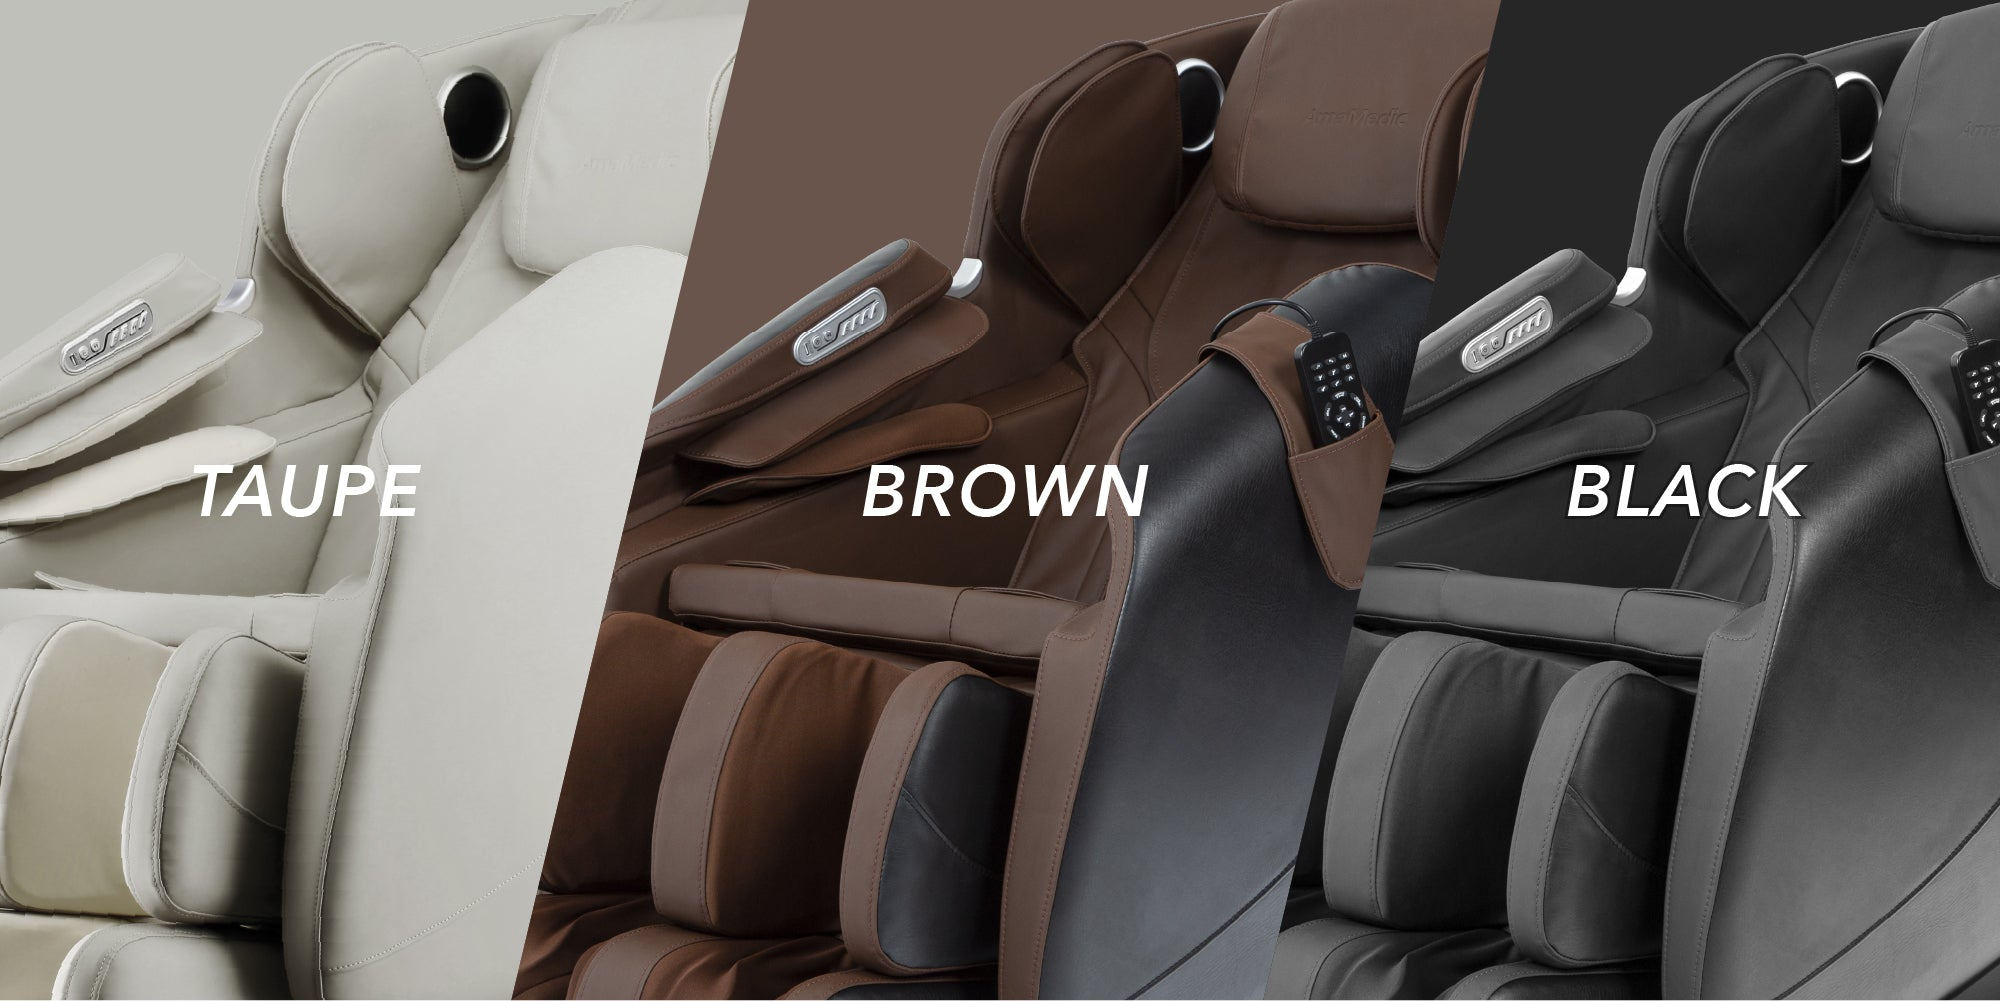 R7's Colors : Taupe, Brown, Black